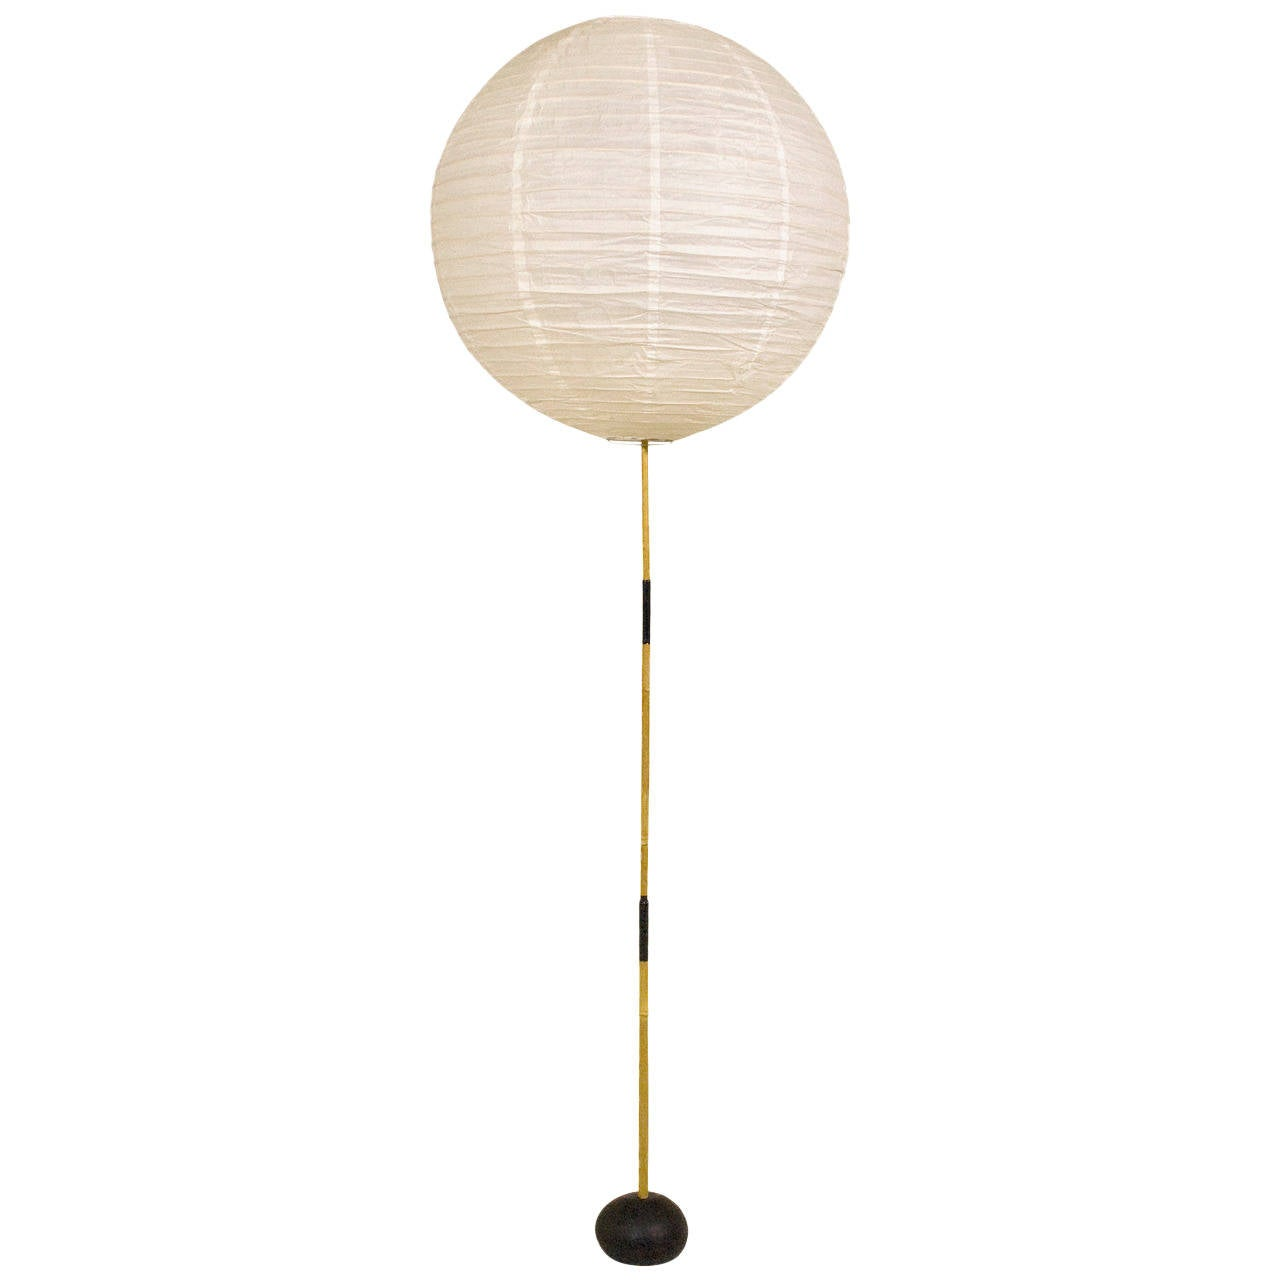 isamu noguchi lighting. isamu noguchi bamboo floor lamp circa 1950 japan 1 lighting t